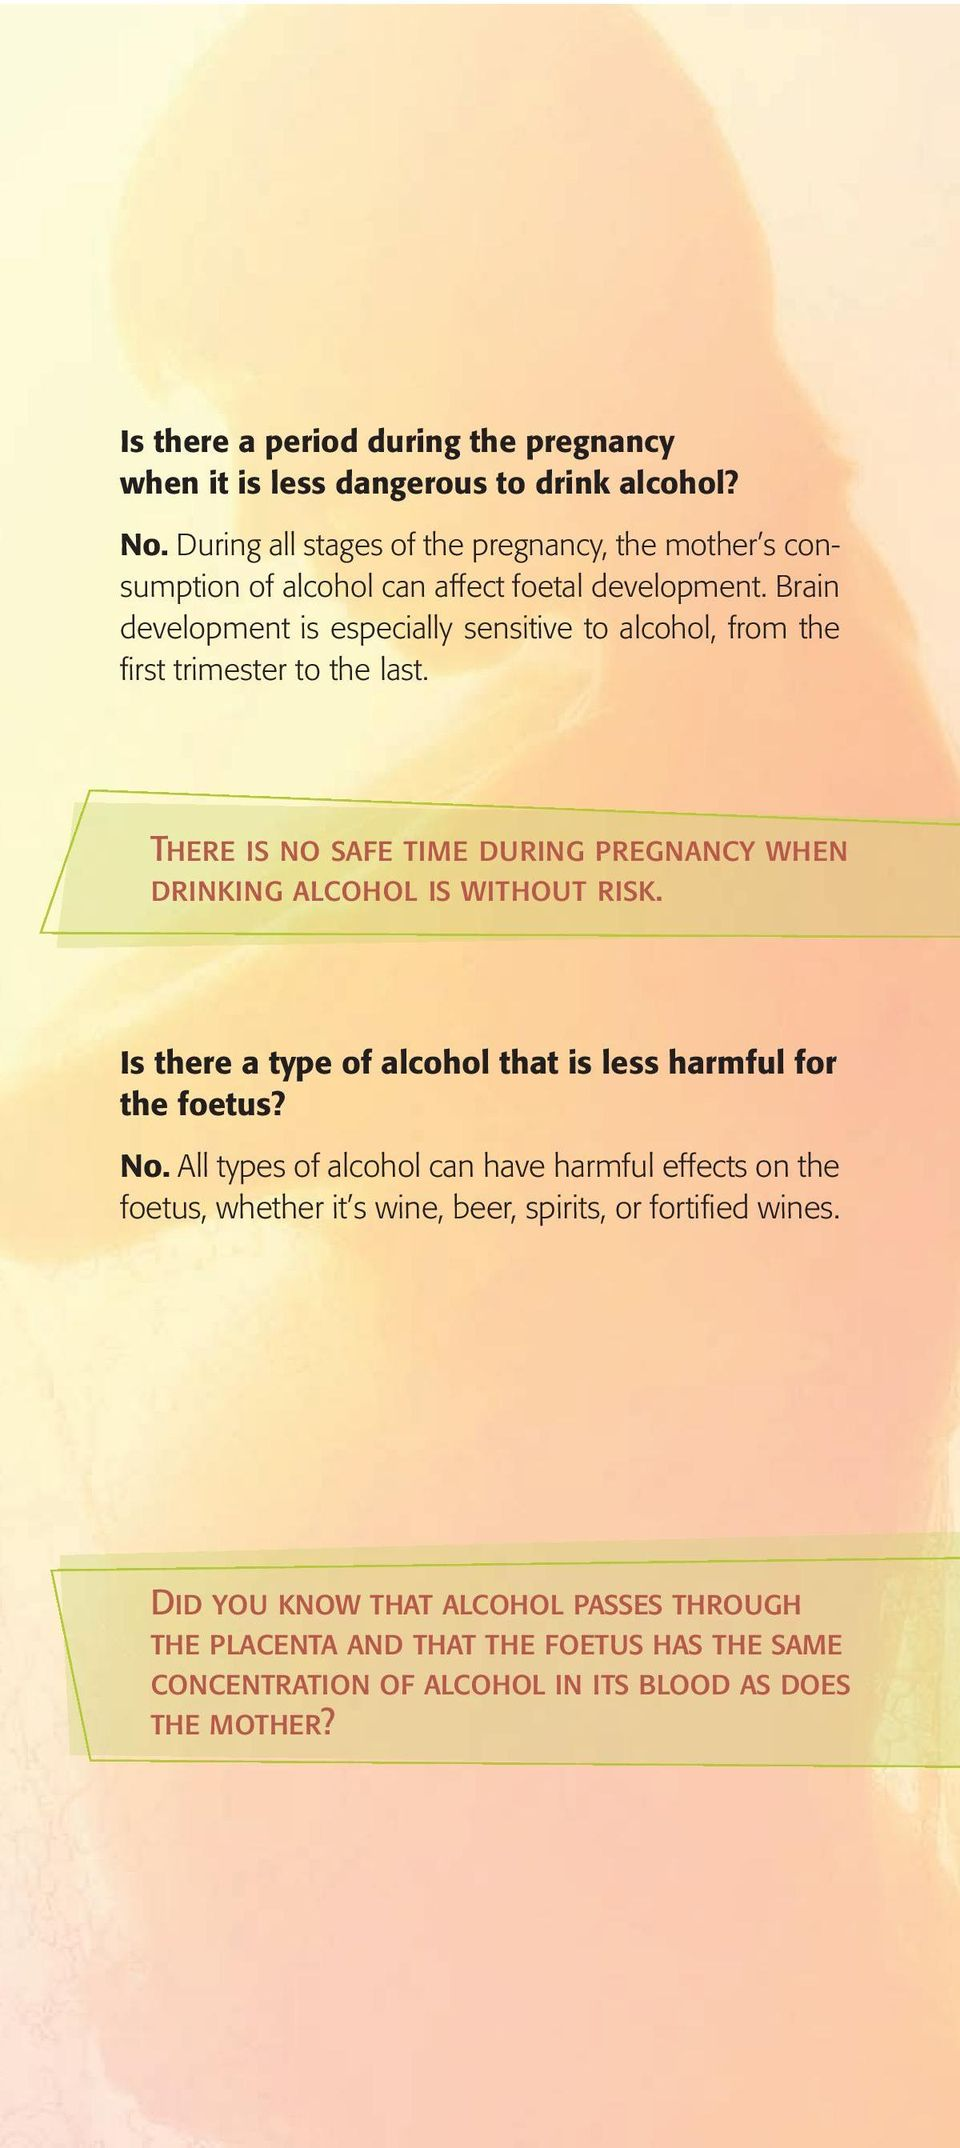 Brain development is especially sensitive to alcohol, from the first trimester to the last. There is no safe time during pregnancy when drinking alcohol is without risk.